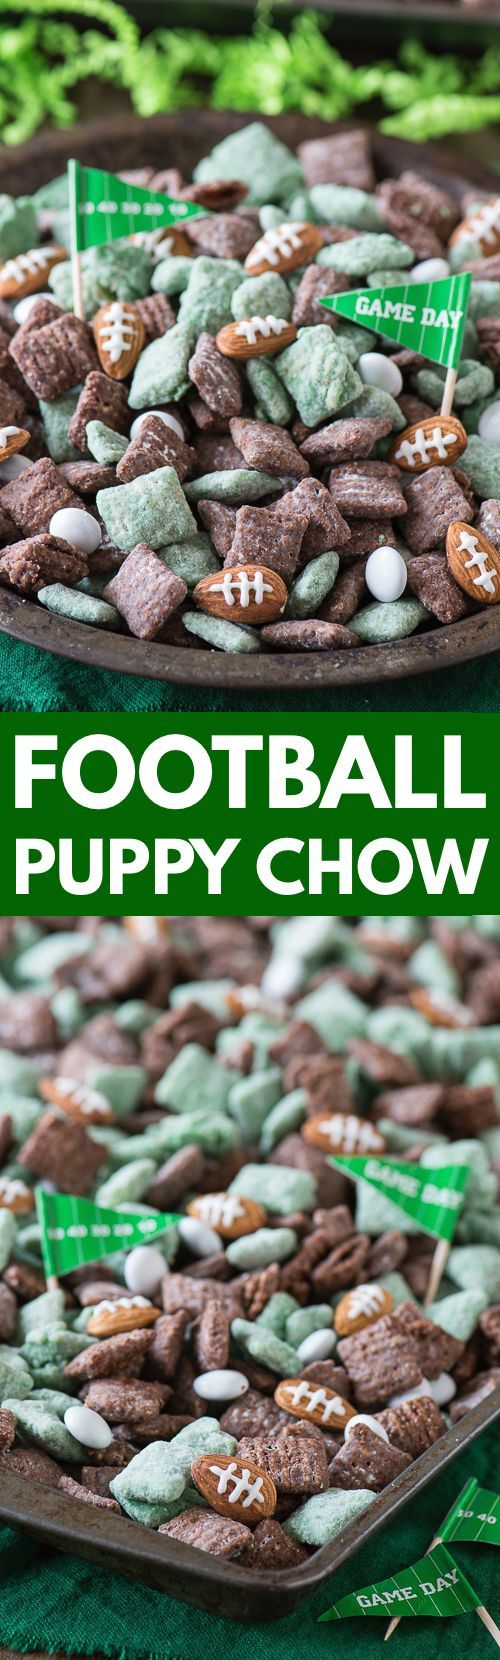 The ultimate football puppy chow! Cheer on your favorite team with this game day or super bowl snack recipe!